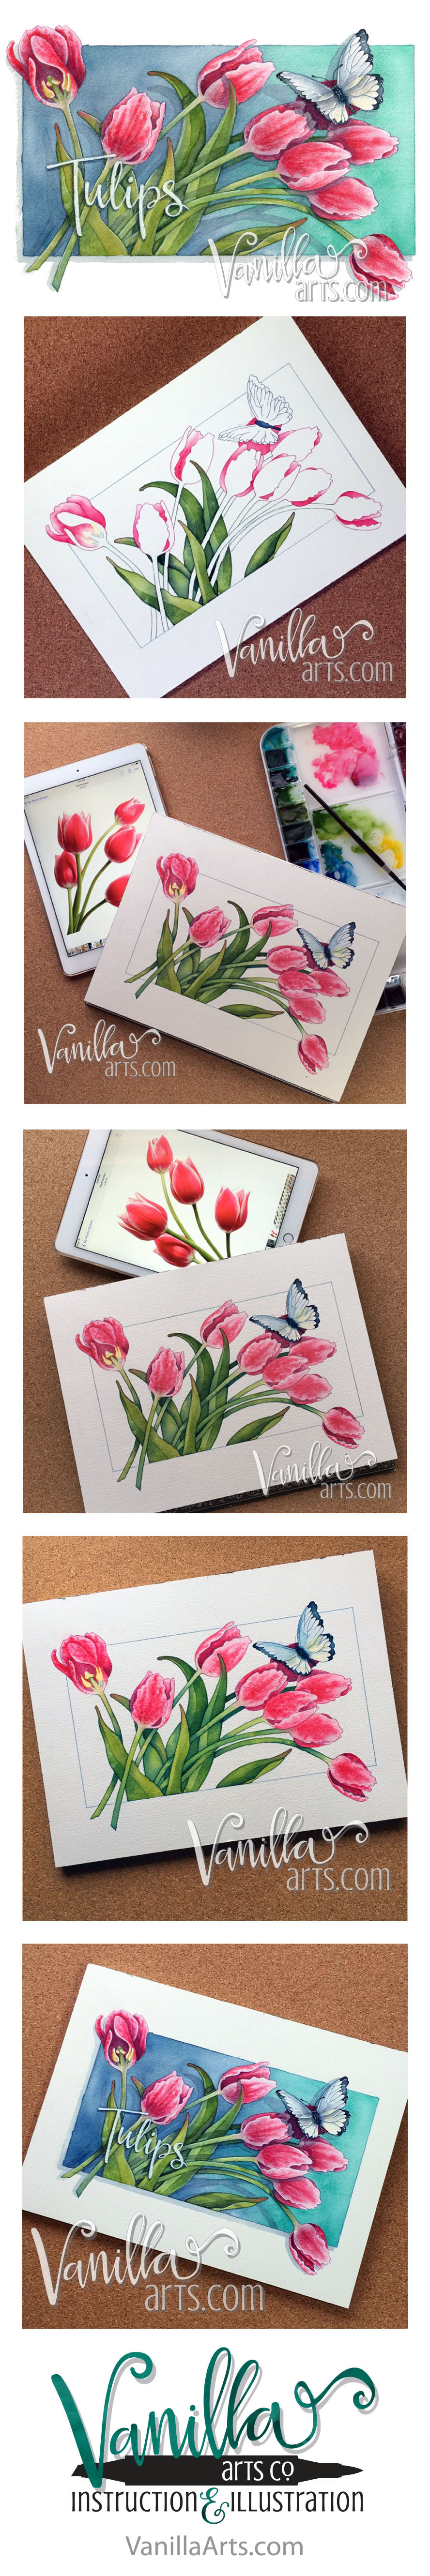 """Tulips"" an H2Oh! watercolor lesson. Teaching Copic colorers to apply their skills to watercolor. 